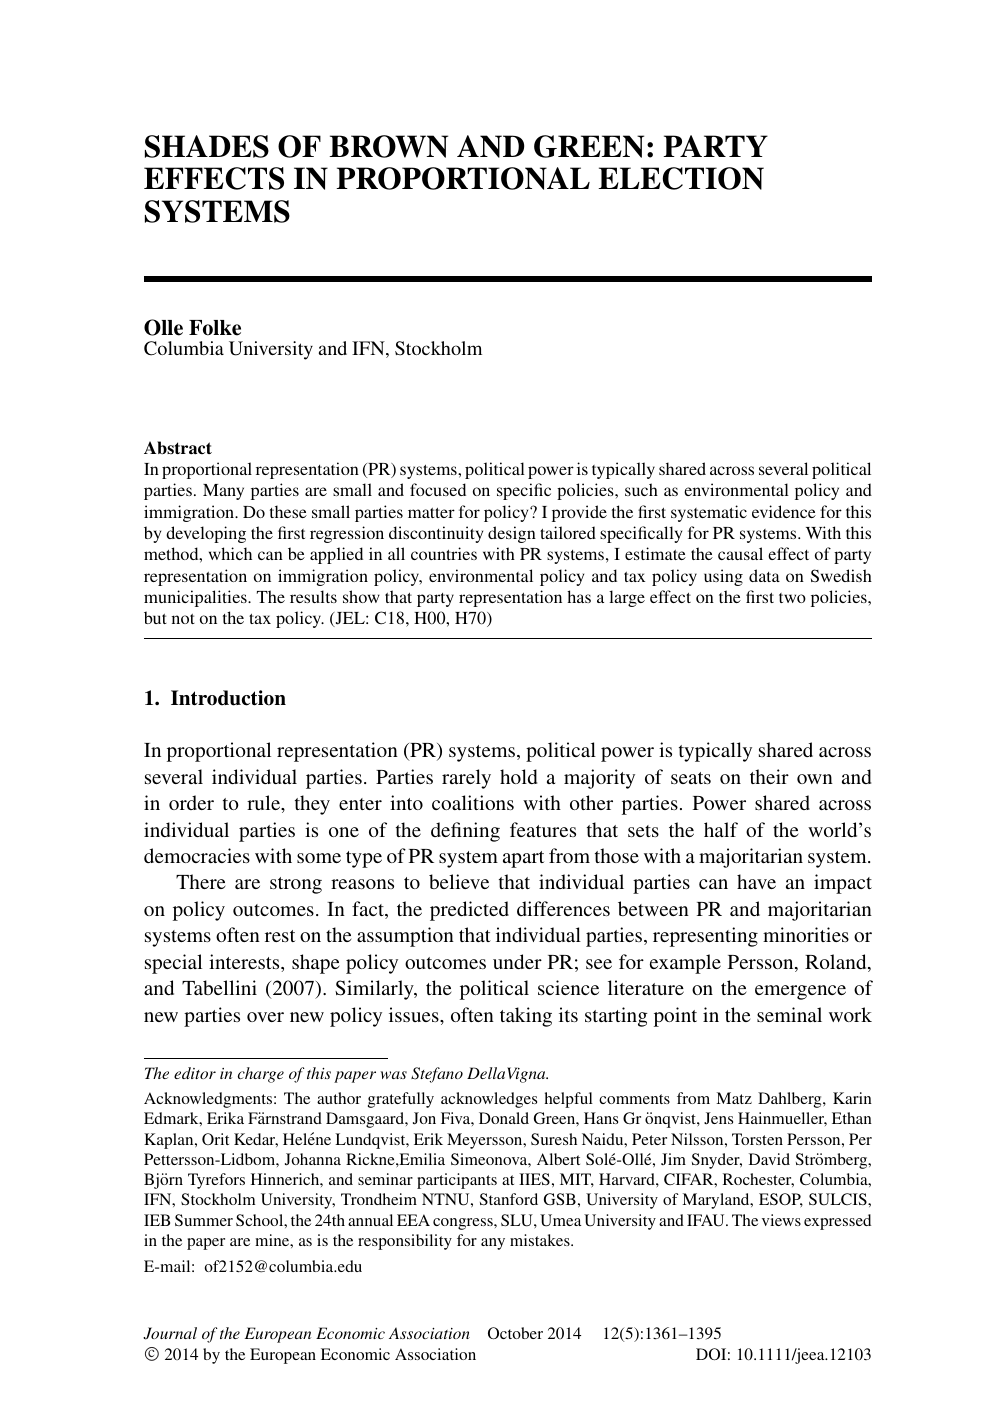 Shades Of Brown And Green Party Effects In Proportional Election Systems Topic Of Research Paper In Political Science Download Scholarly Article Pdf And Read For Free On Cyberleninka Open Science Hub